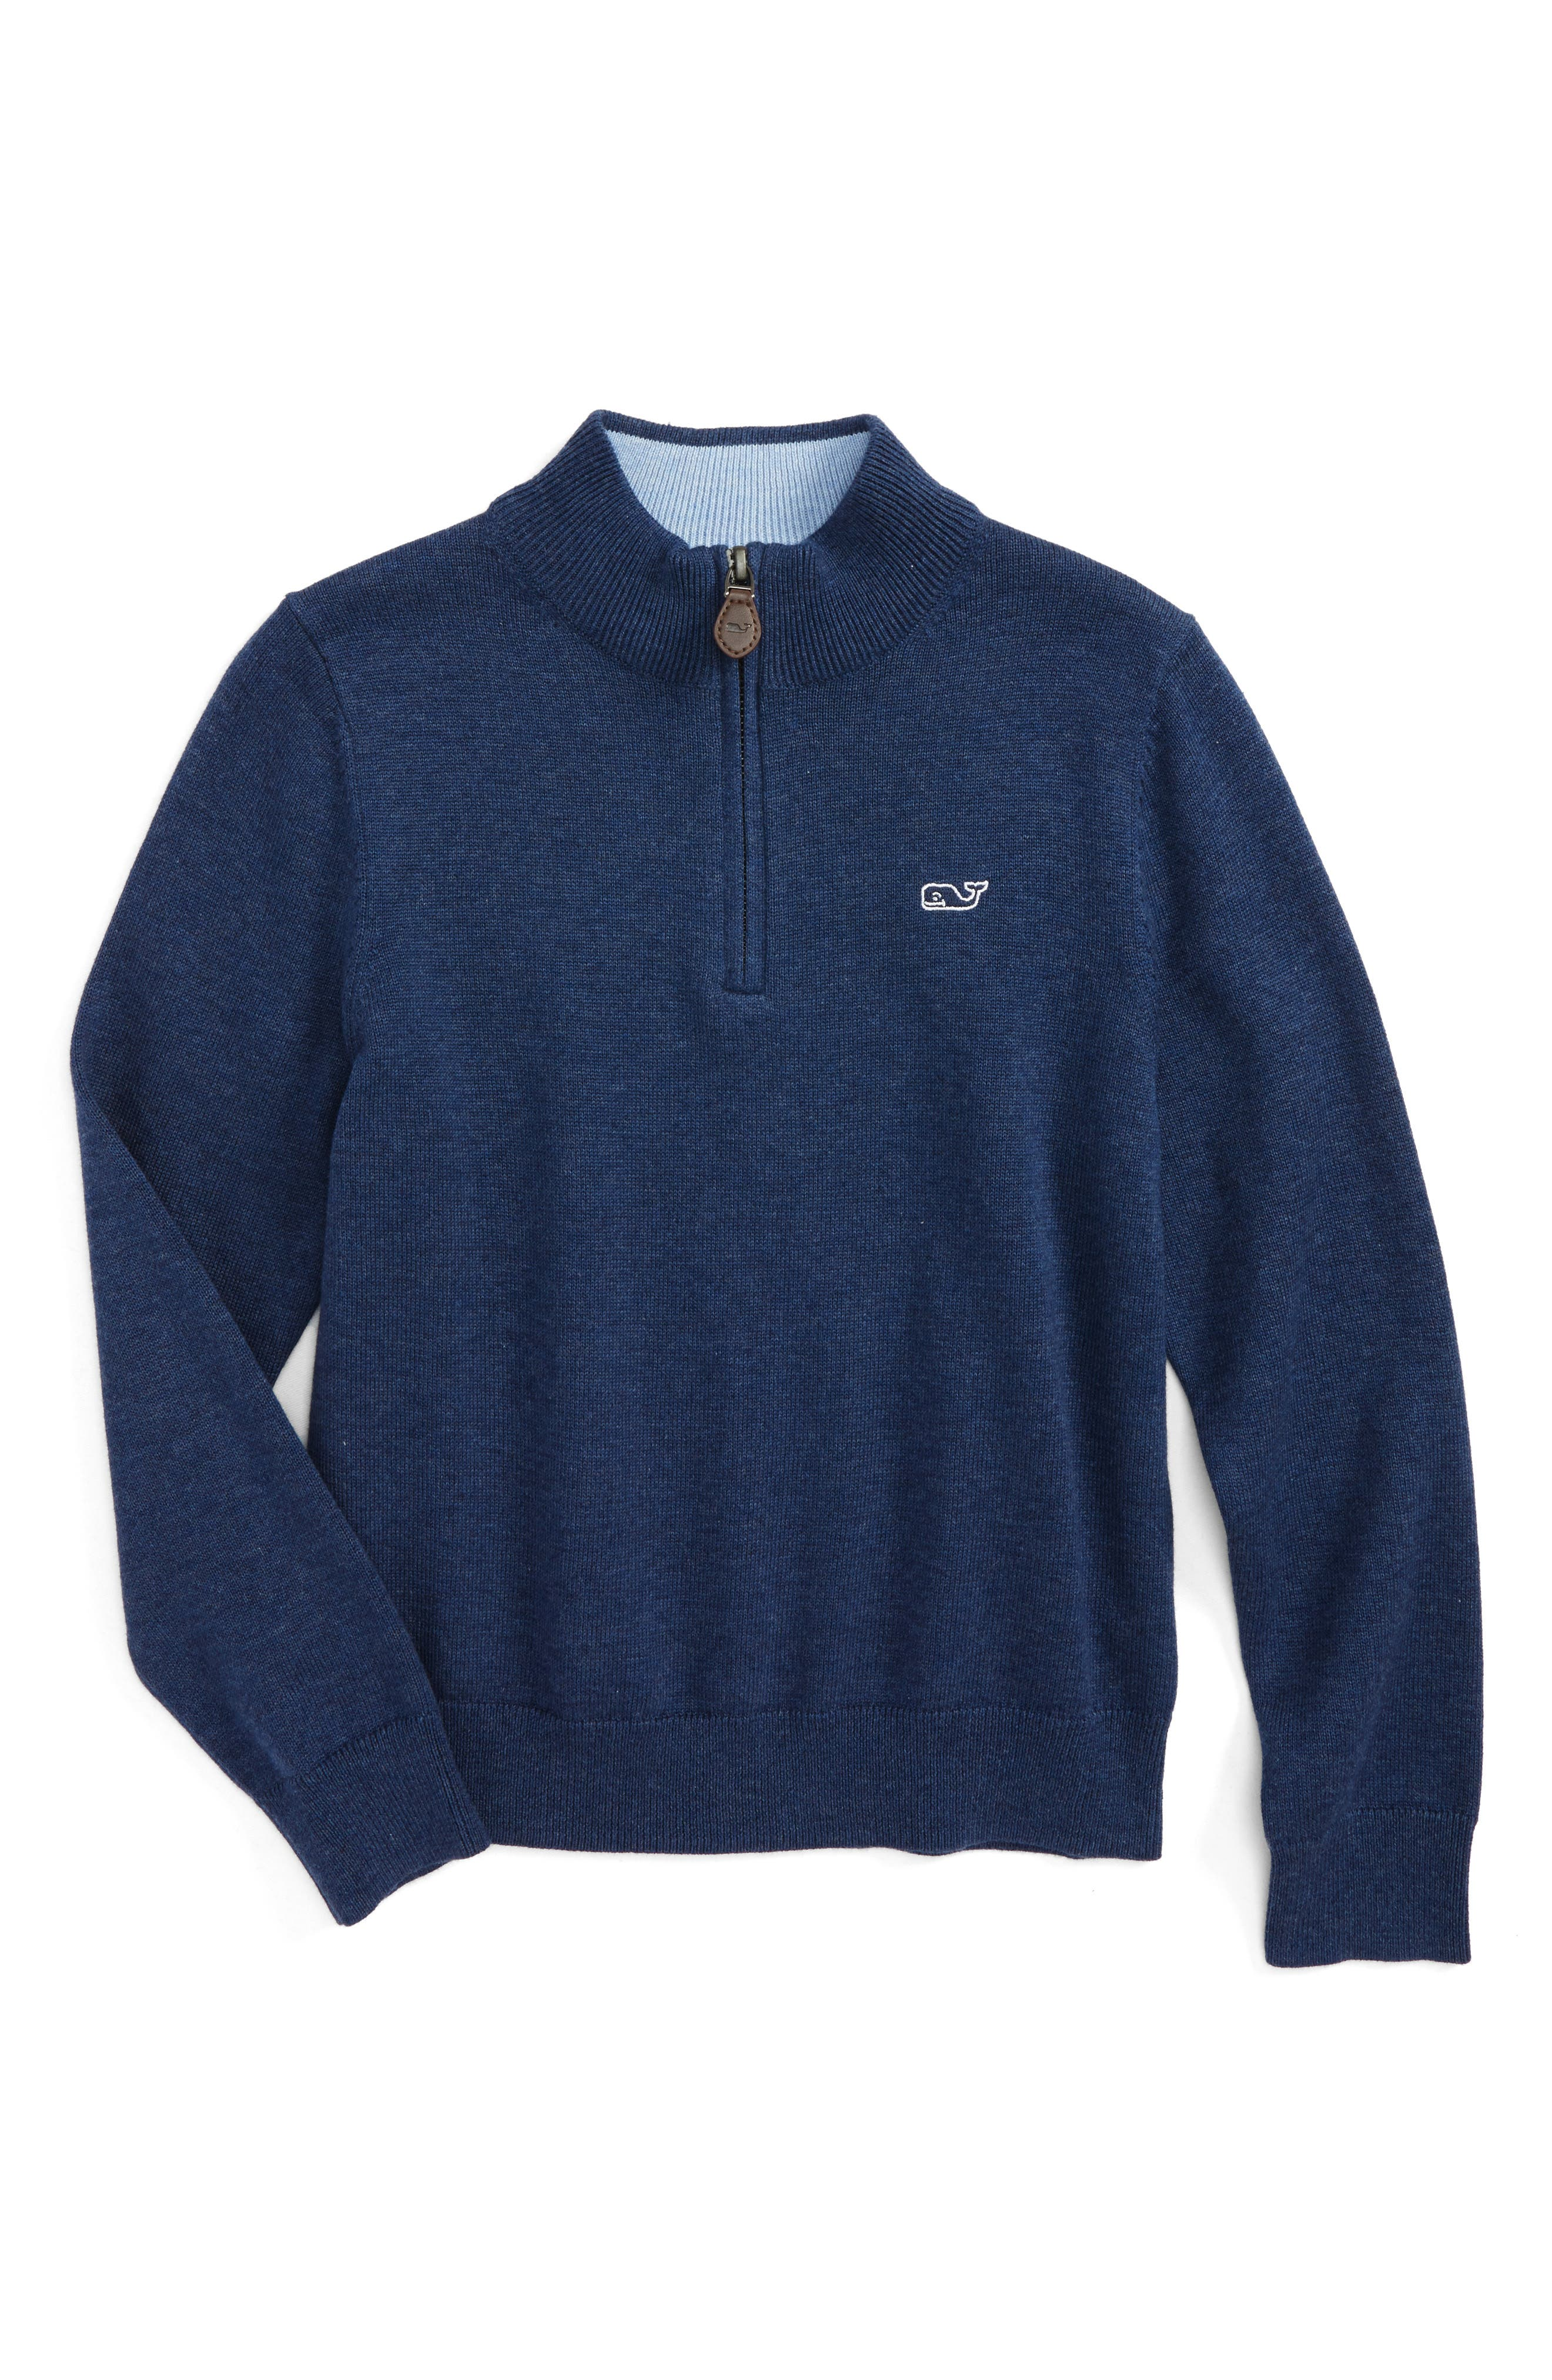 Main Image - vineyard vines Classic Quarter Zip Sweater (Toddler Boys, Little Boys & Big Boys)